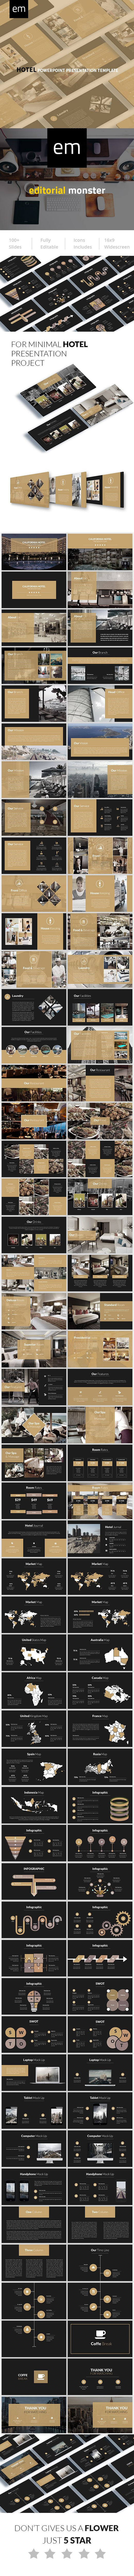 Hotel Powerpoint Presentation Template - #Business #PowerPoint Templates Download here: https://graphicriver.net/item/hotel-powerpoint-presentation-template/19706278?ref=alena994